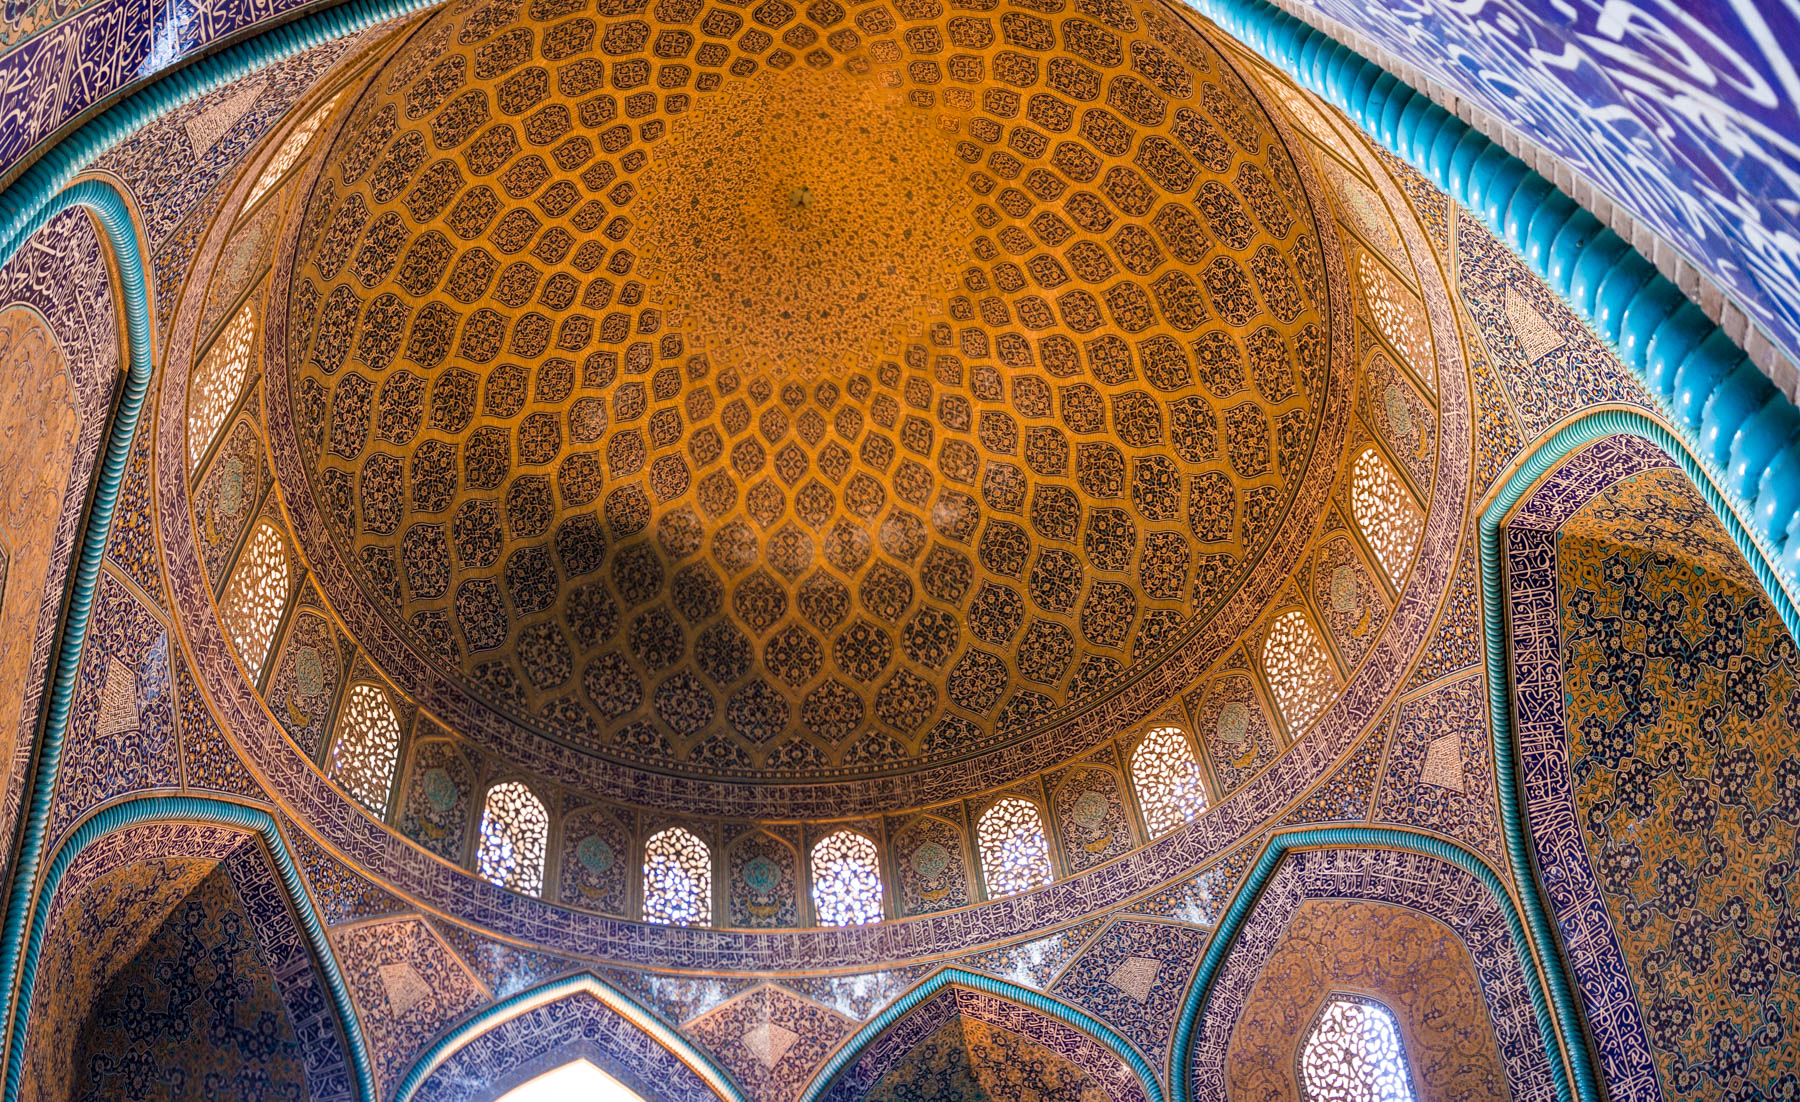 Wide angle of the Sheikh Lotfallah Mosque in Esfahan, Iran